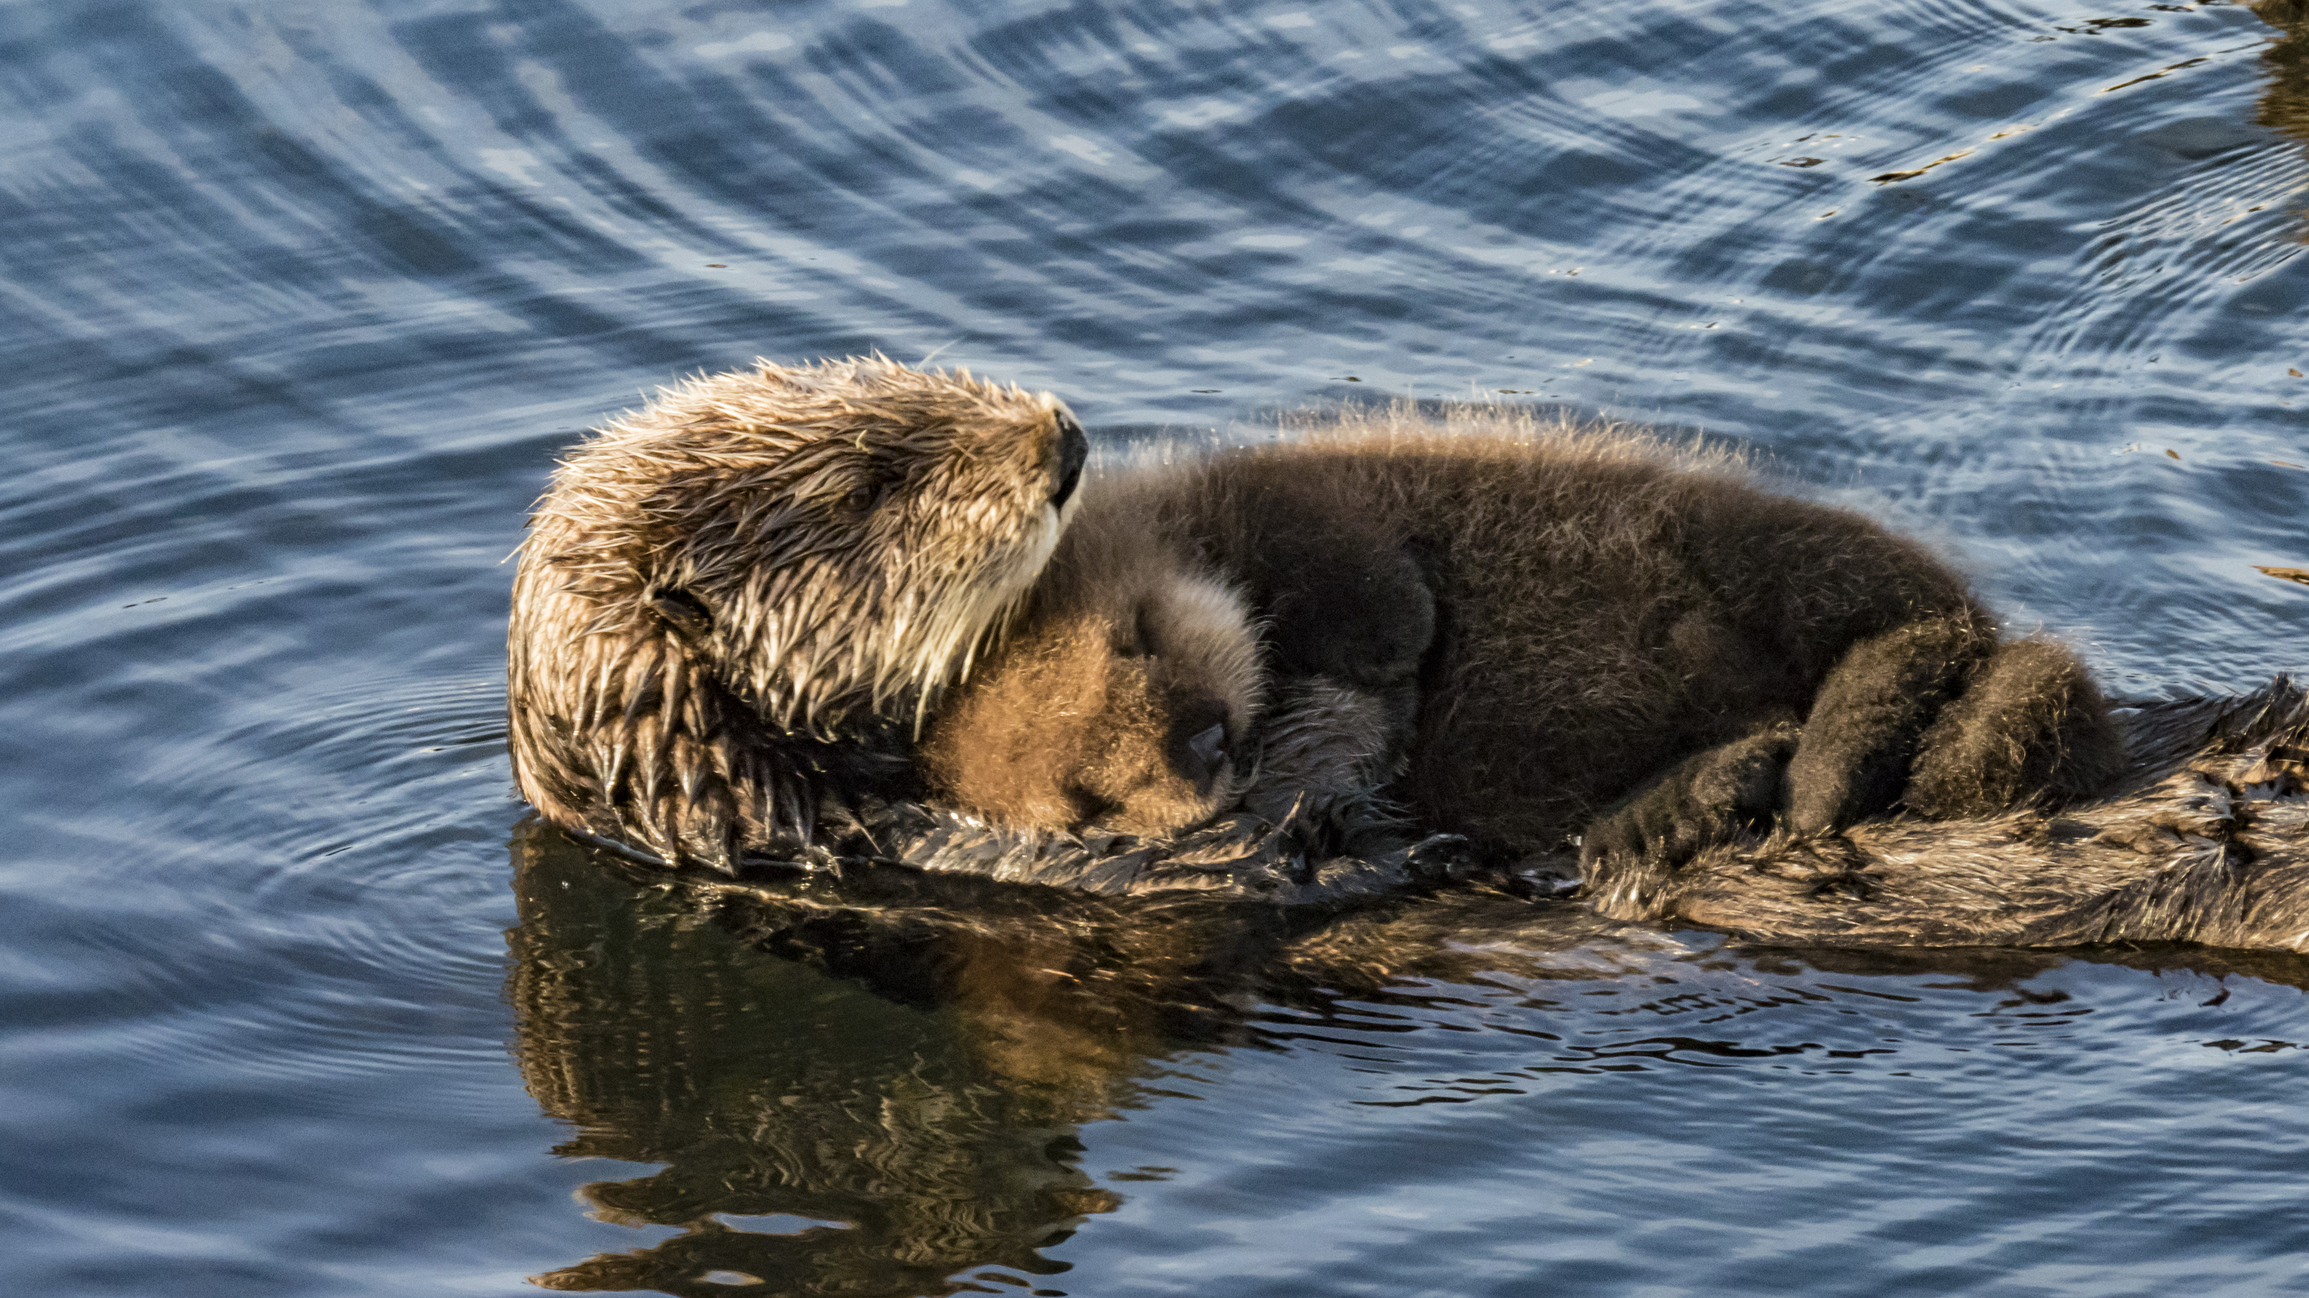 Major Changes Proposed To Endangered Species Act